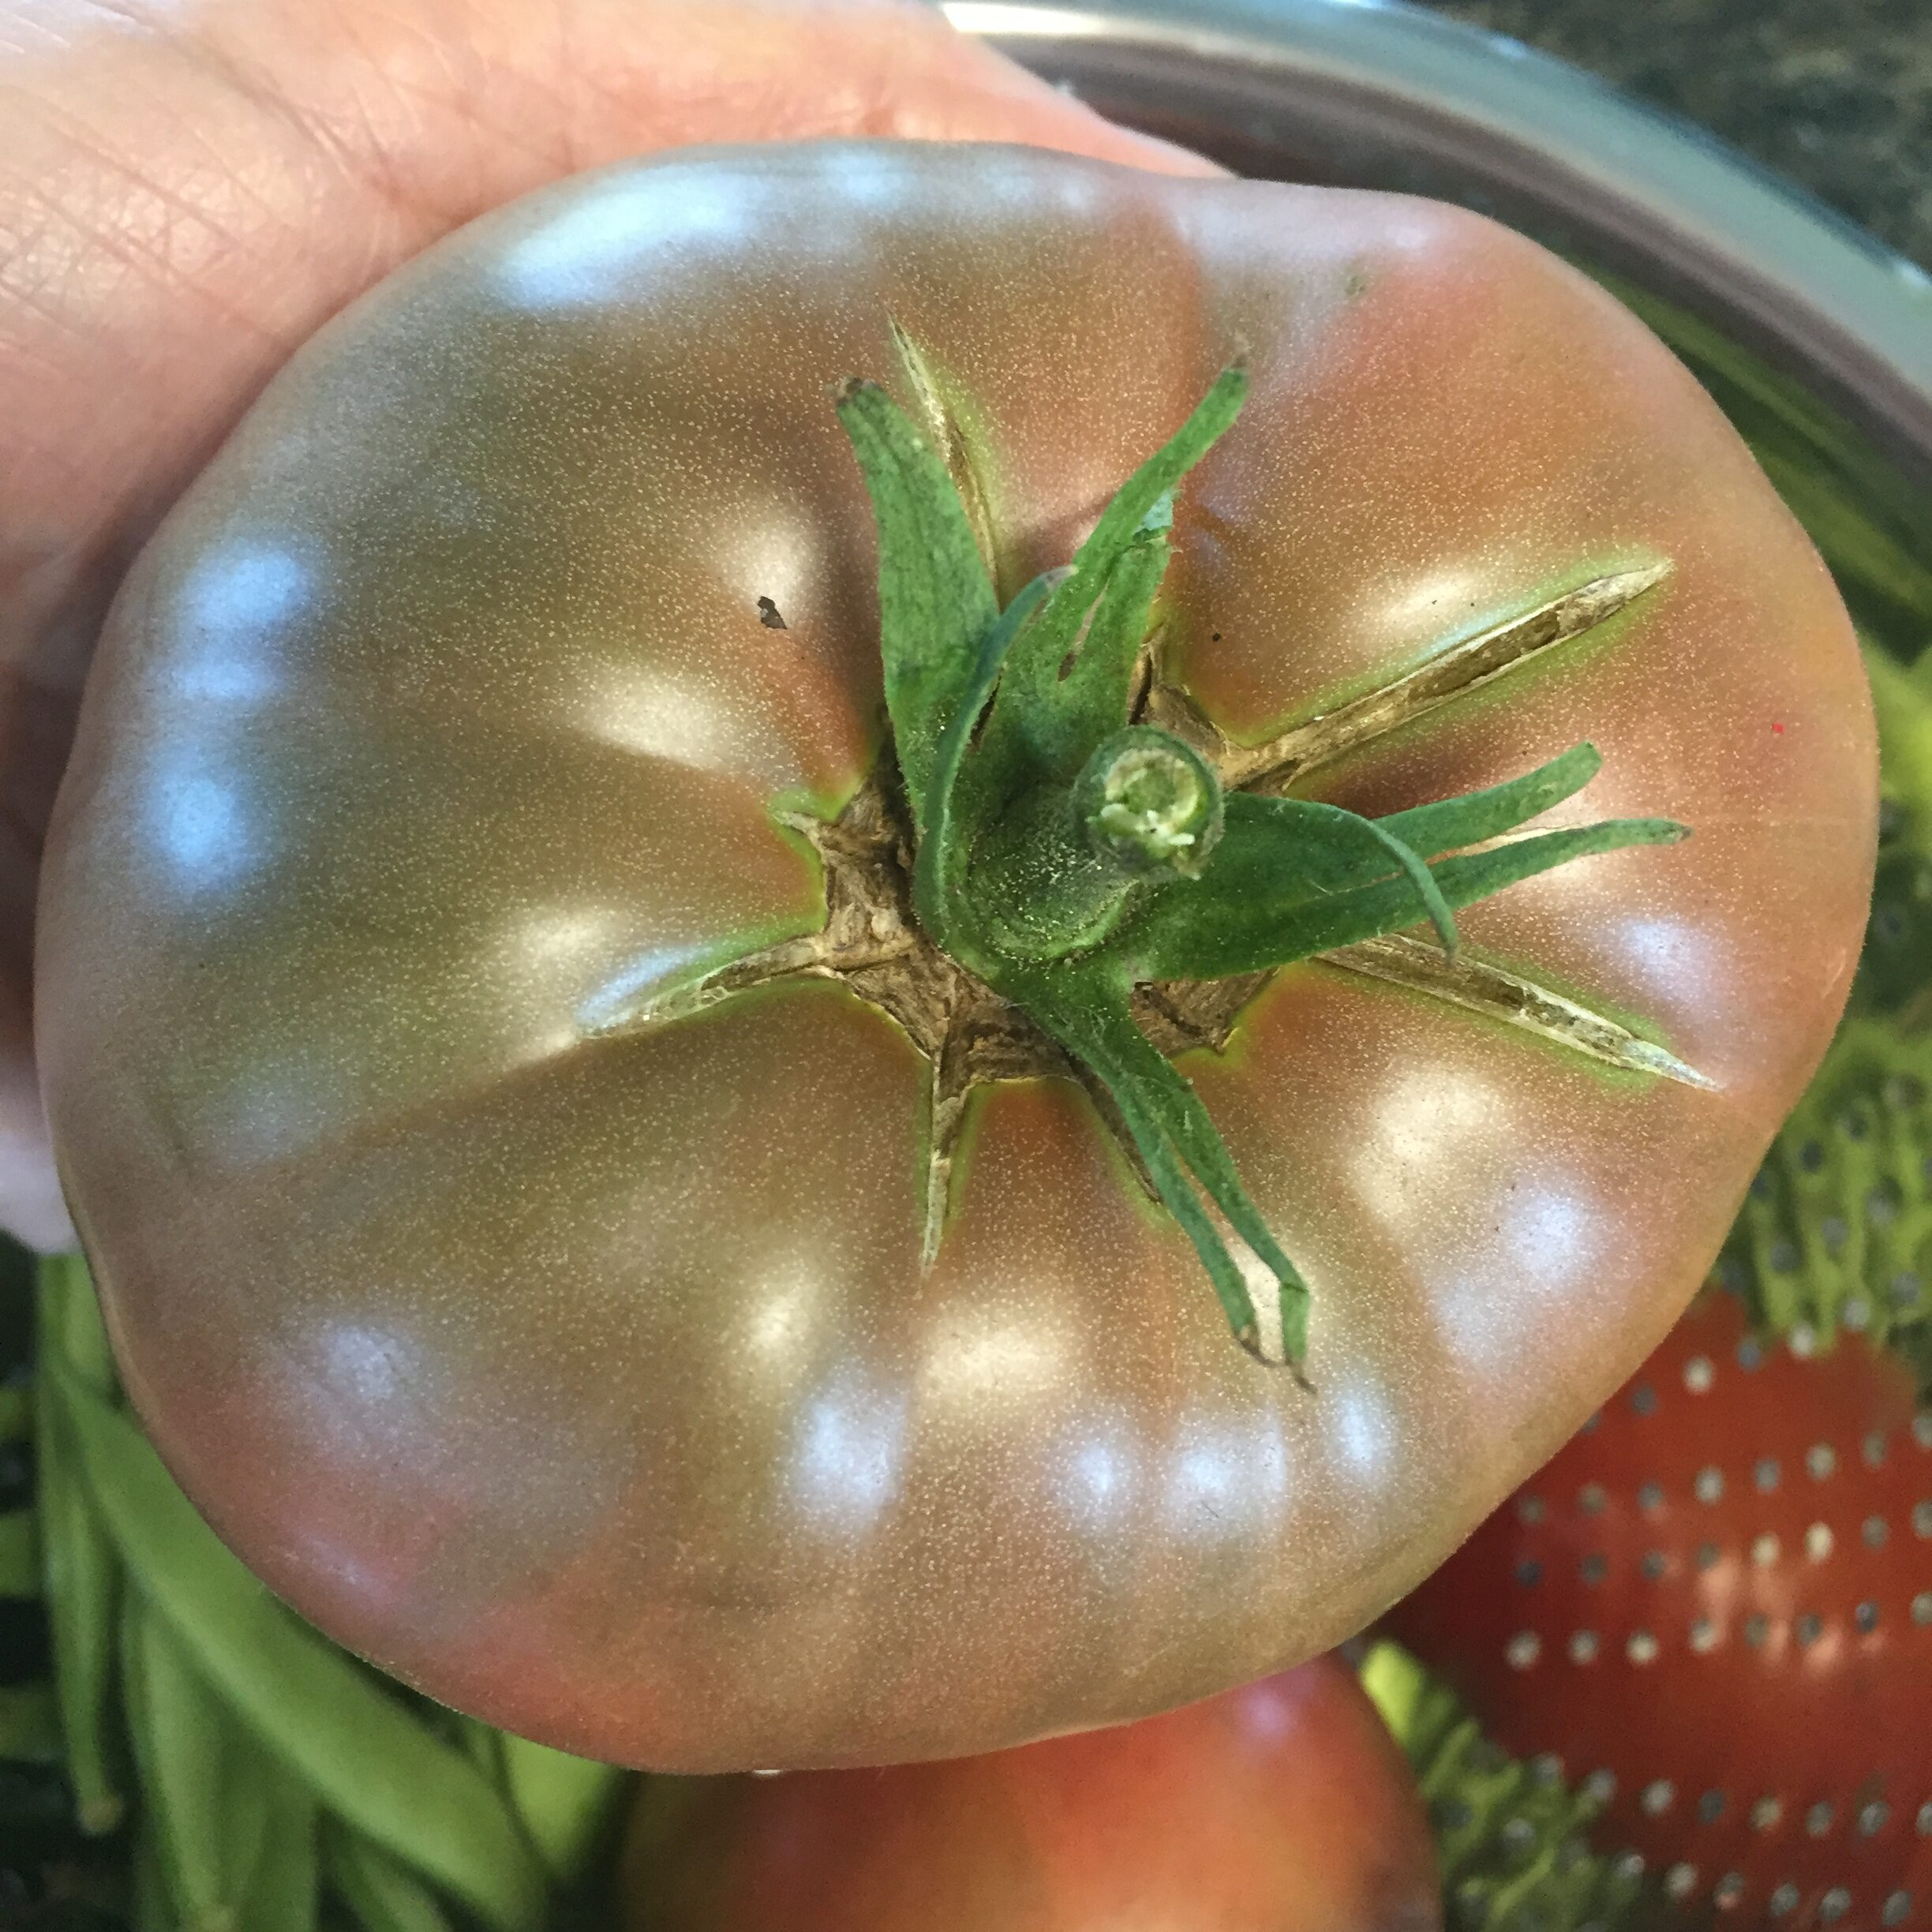 83E8336A 826B 48DB BDAC 344BB4688FE3 Bring your tomato to lunch day